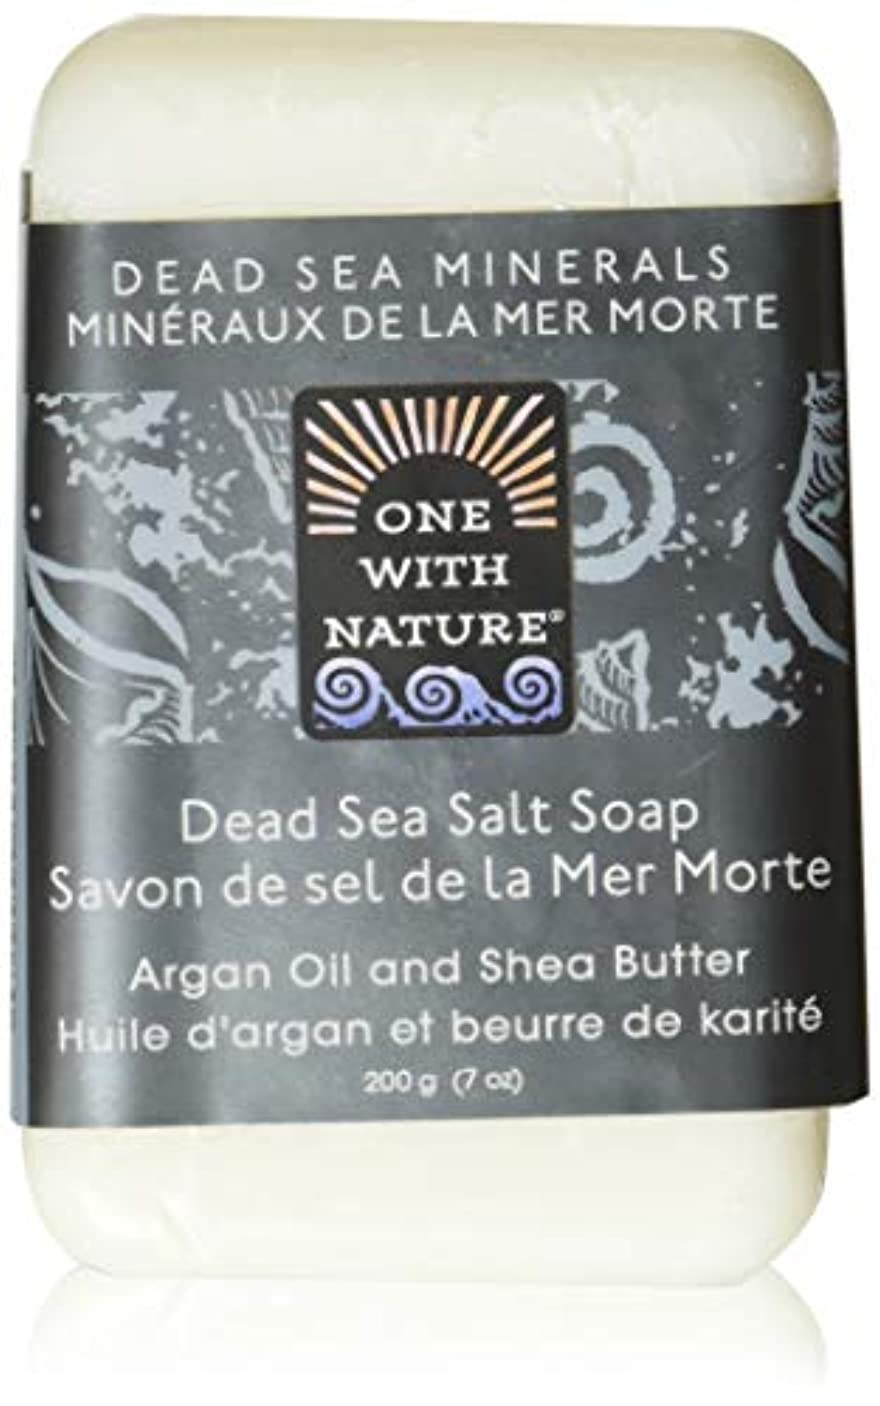 Dead Sea Mineral Dead Sea Salt Soap - 7 oz by One With Nature